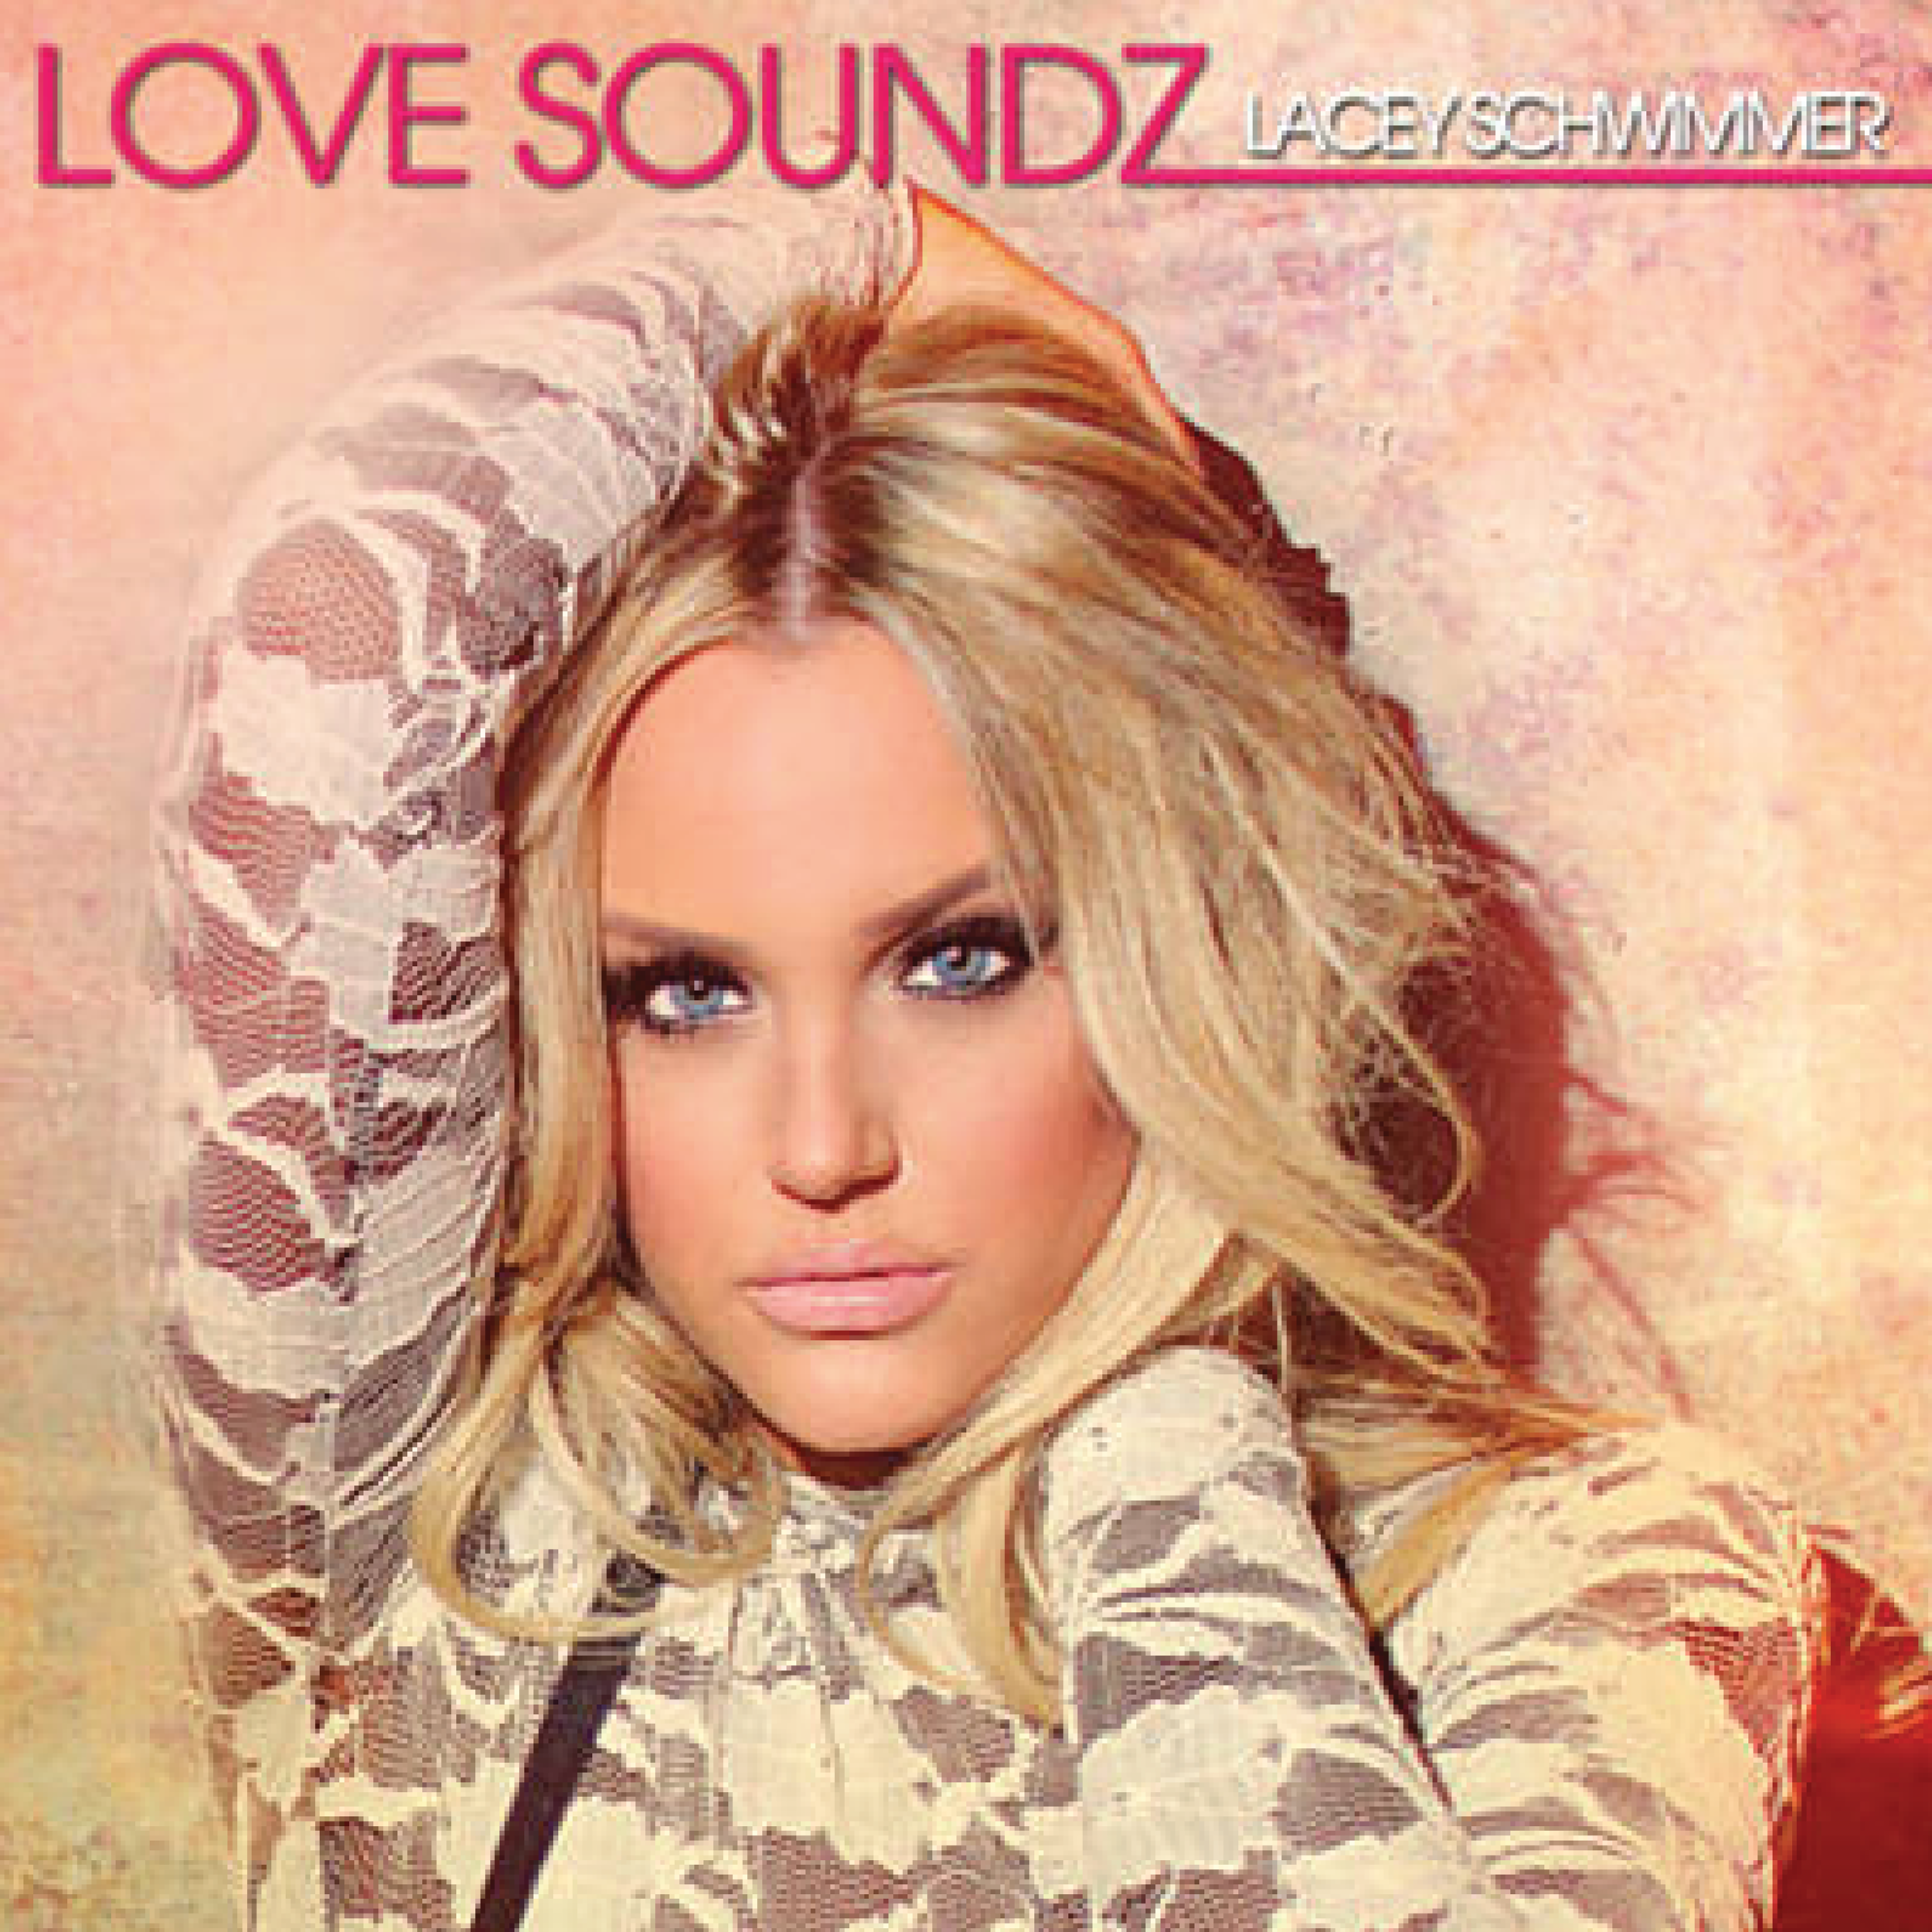 1916 THUMBNAILS_Love Soundz - Lacey Schwimmer.png